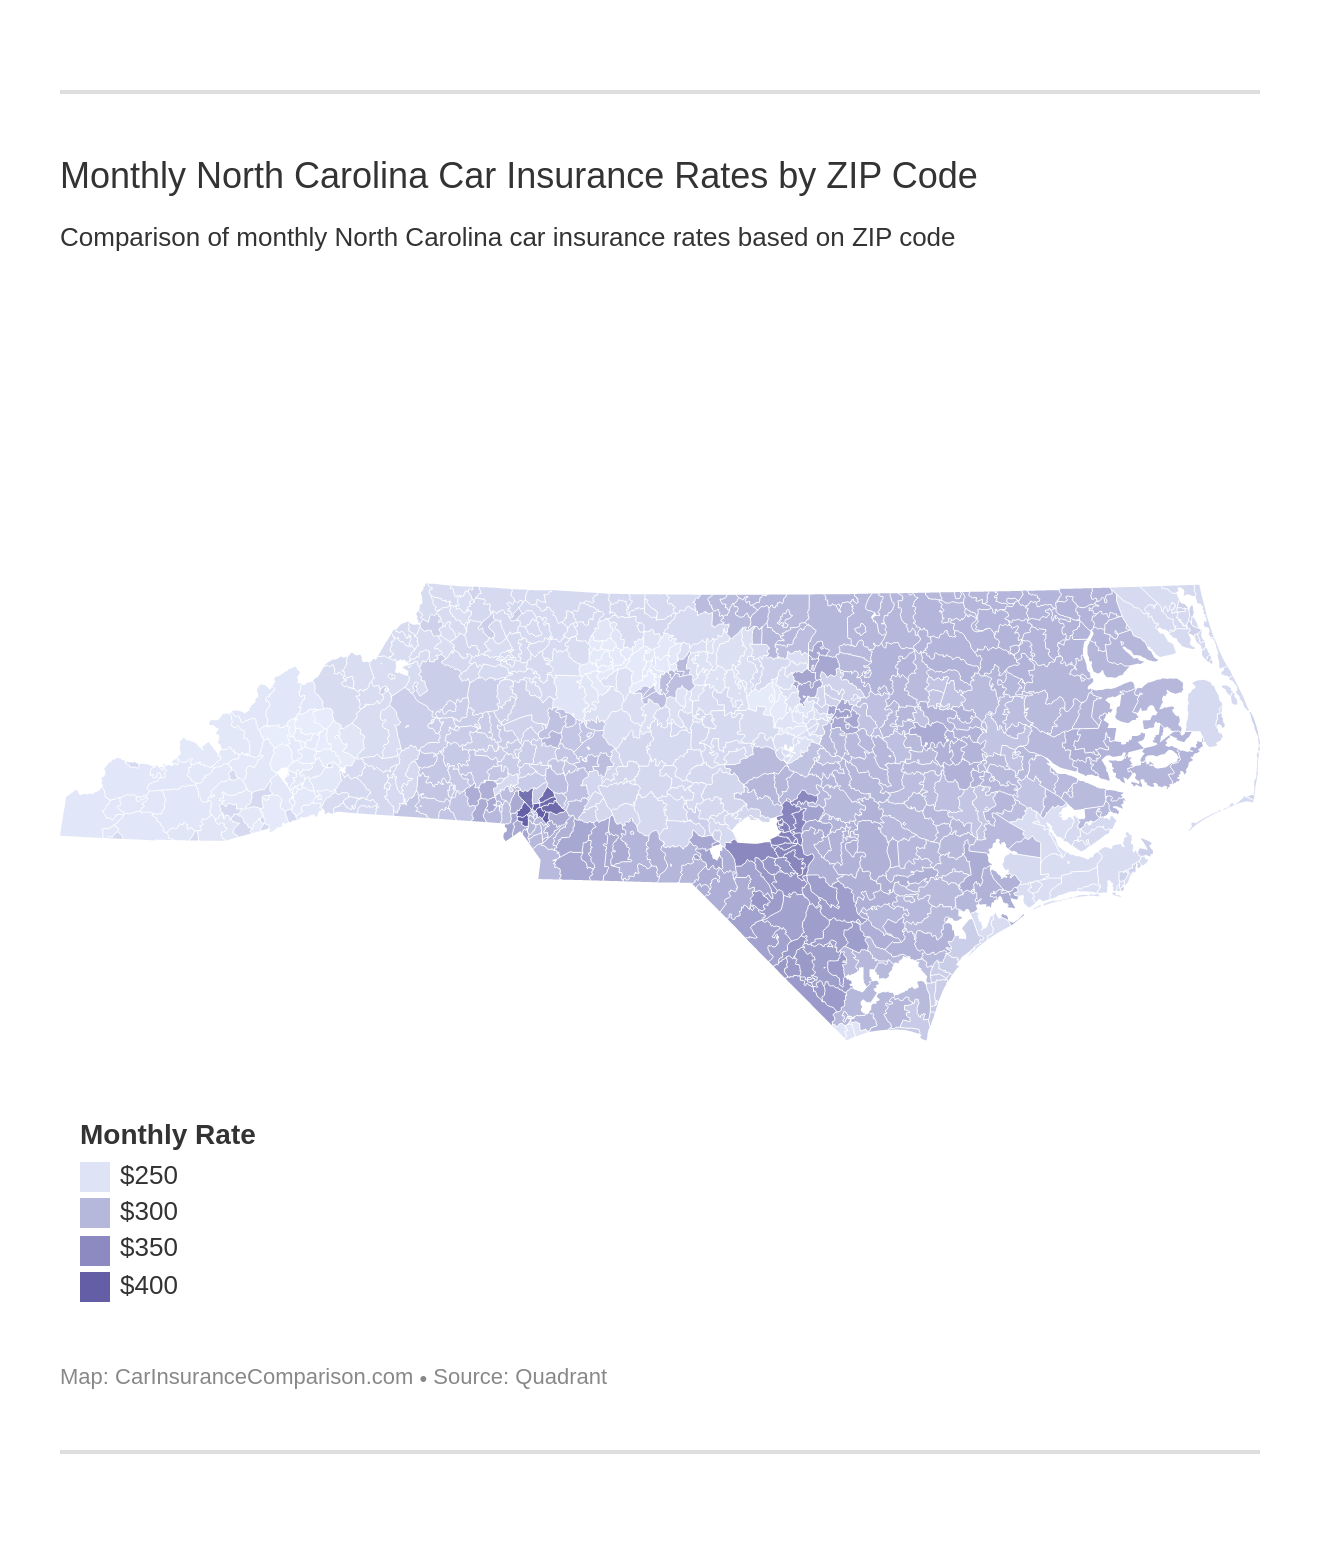 Monthly North Carolina Car Insurance Rates by ZIP Code